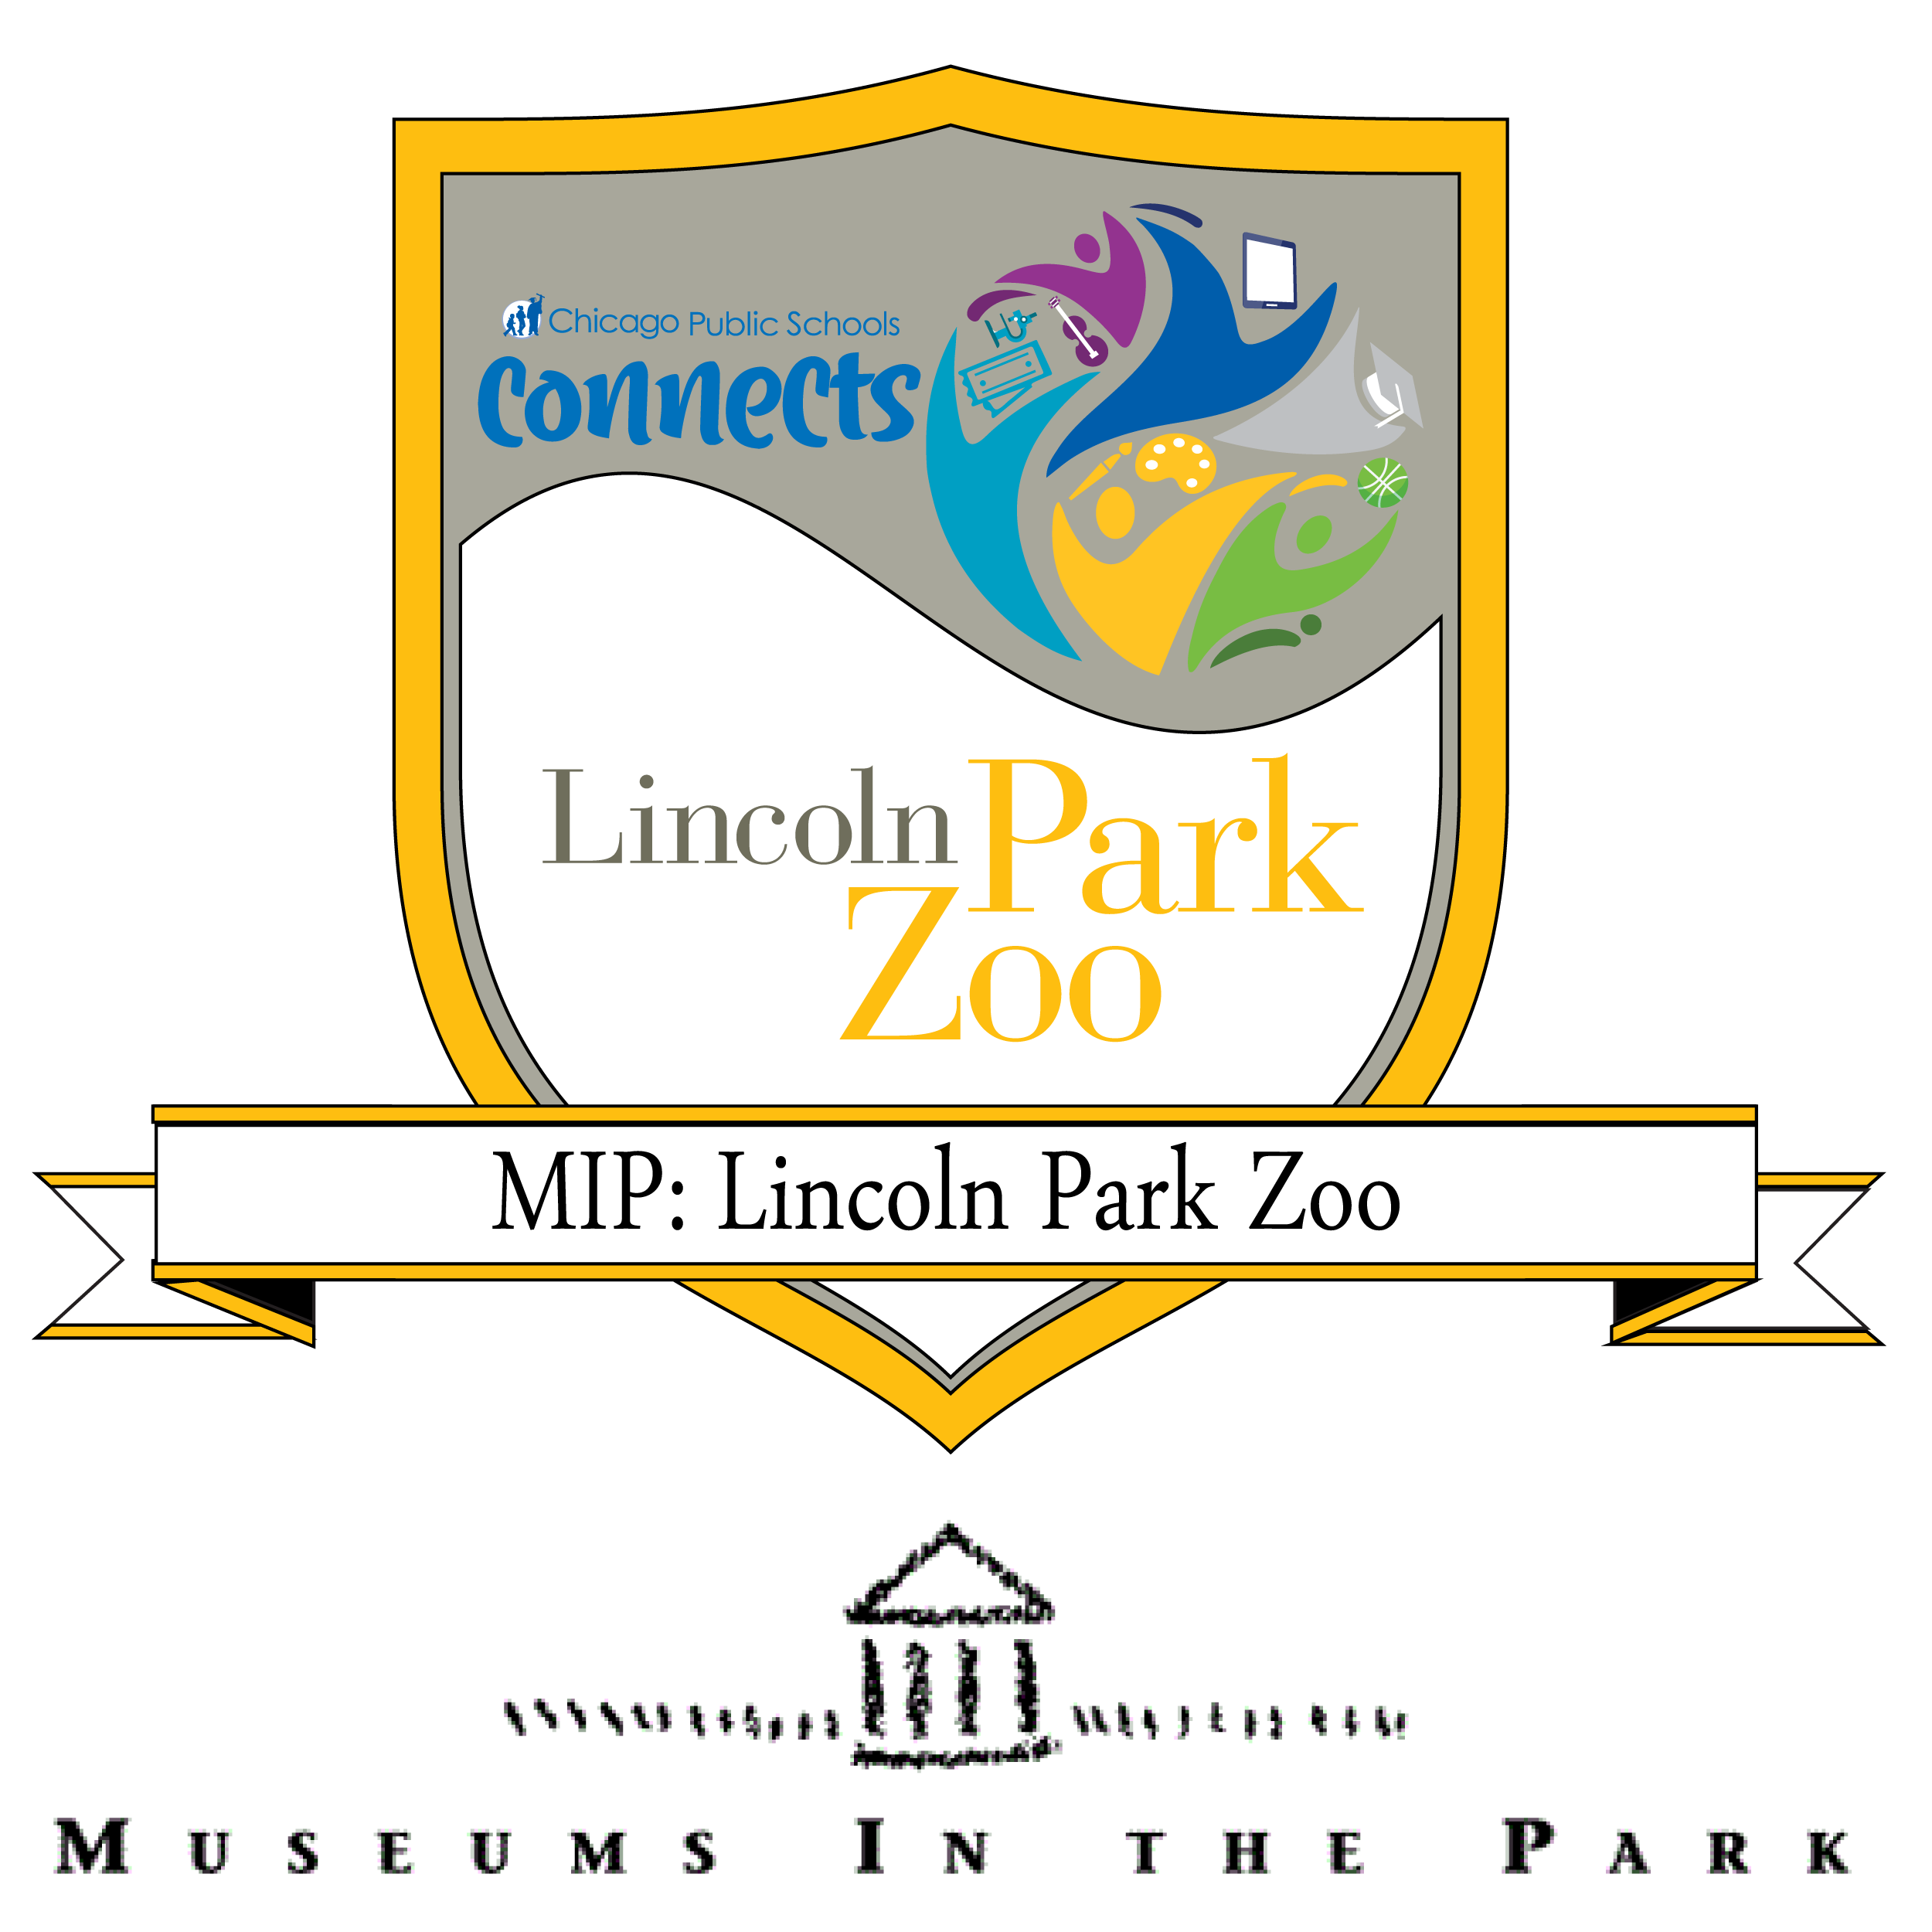 Museums in the Park: Lincoln Park Zoo